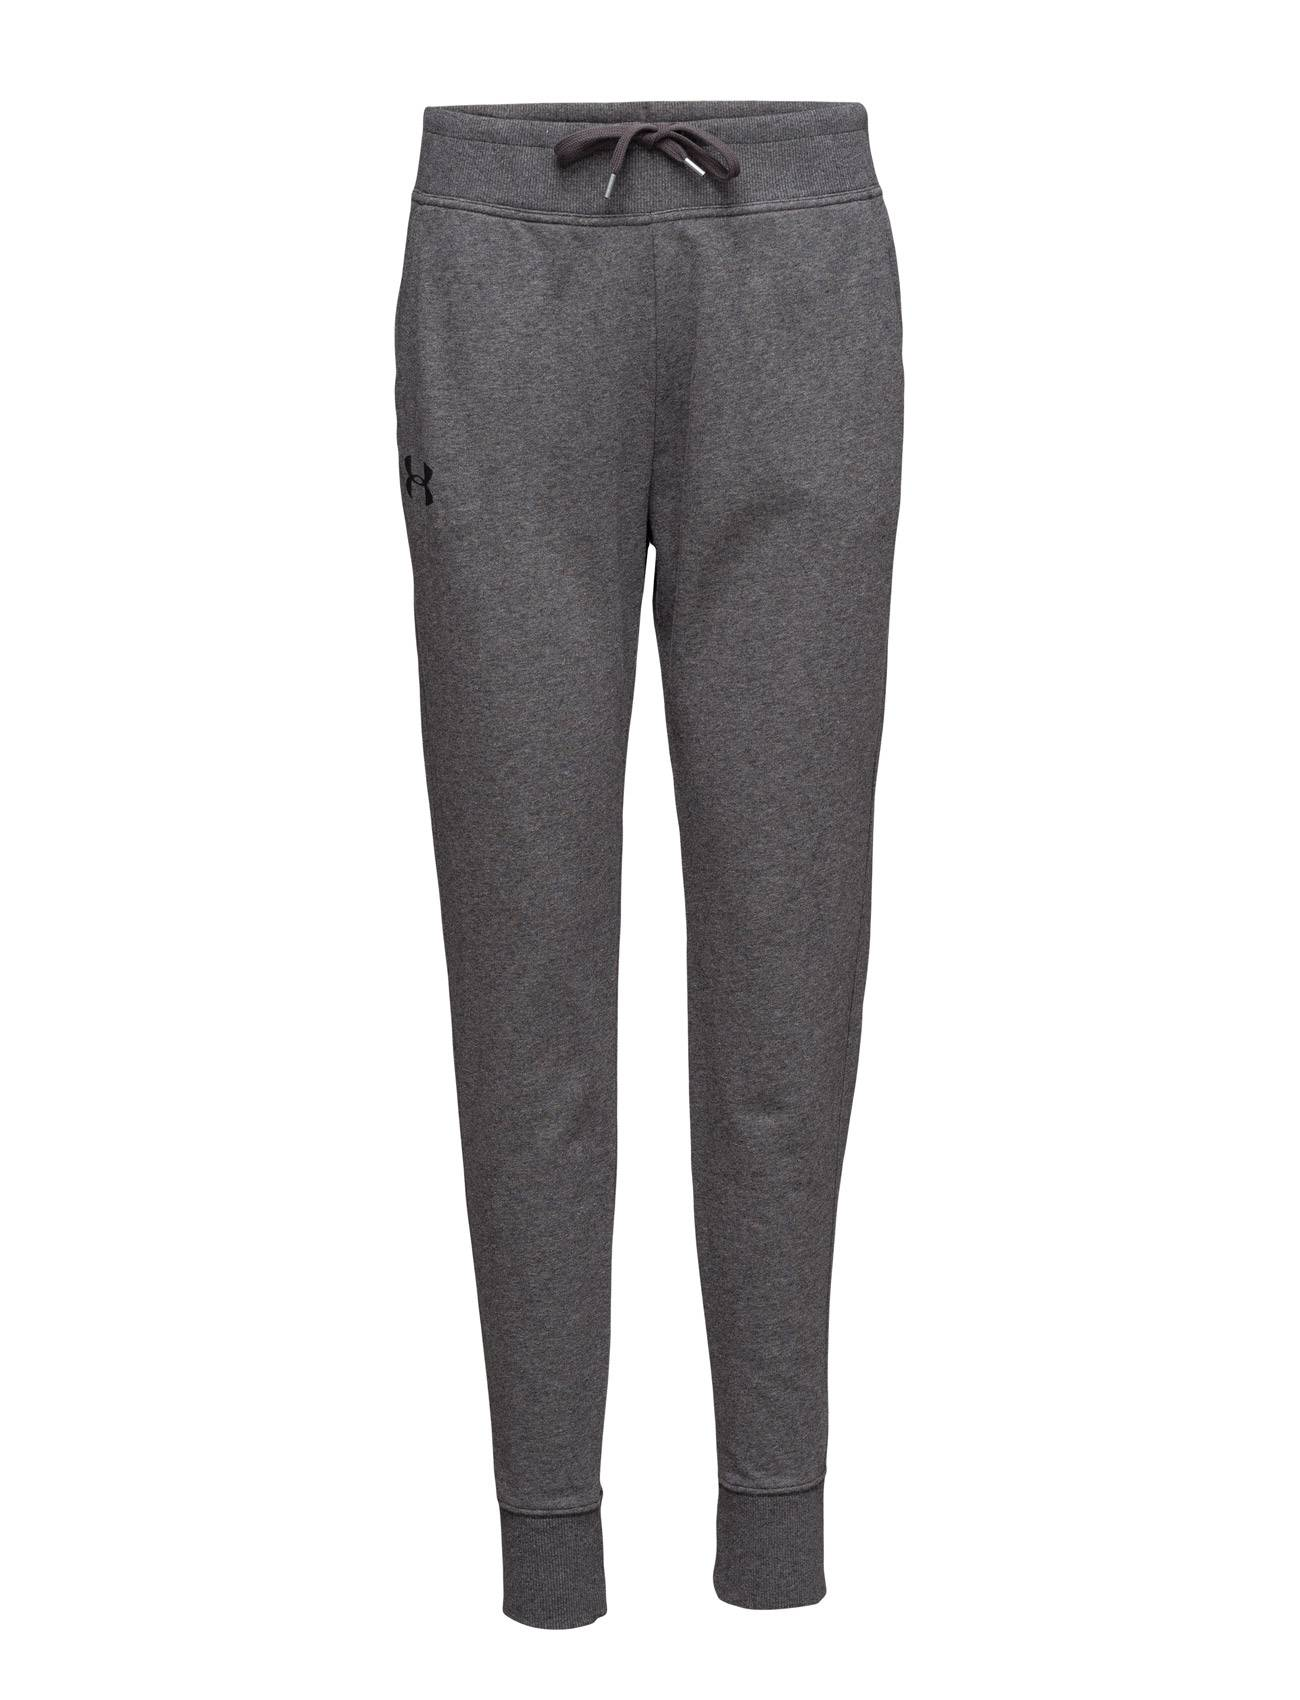 Under Armour French Terry Jogger Pant